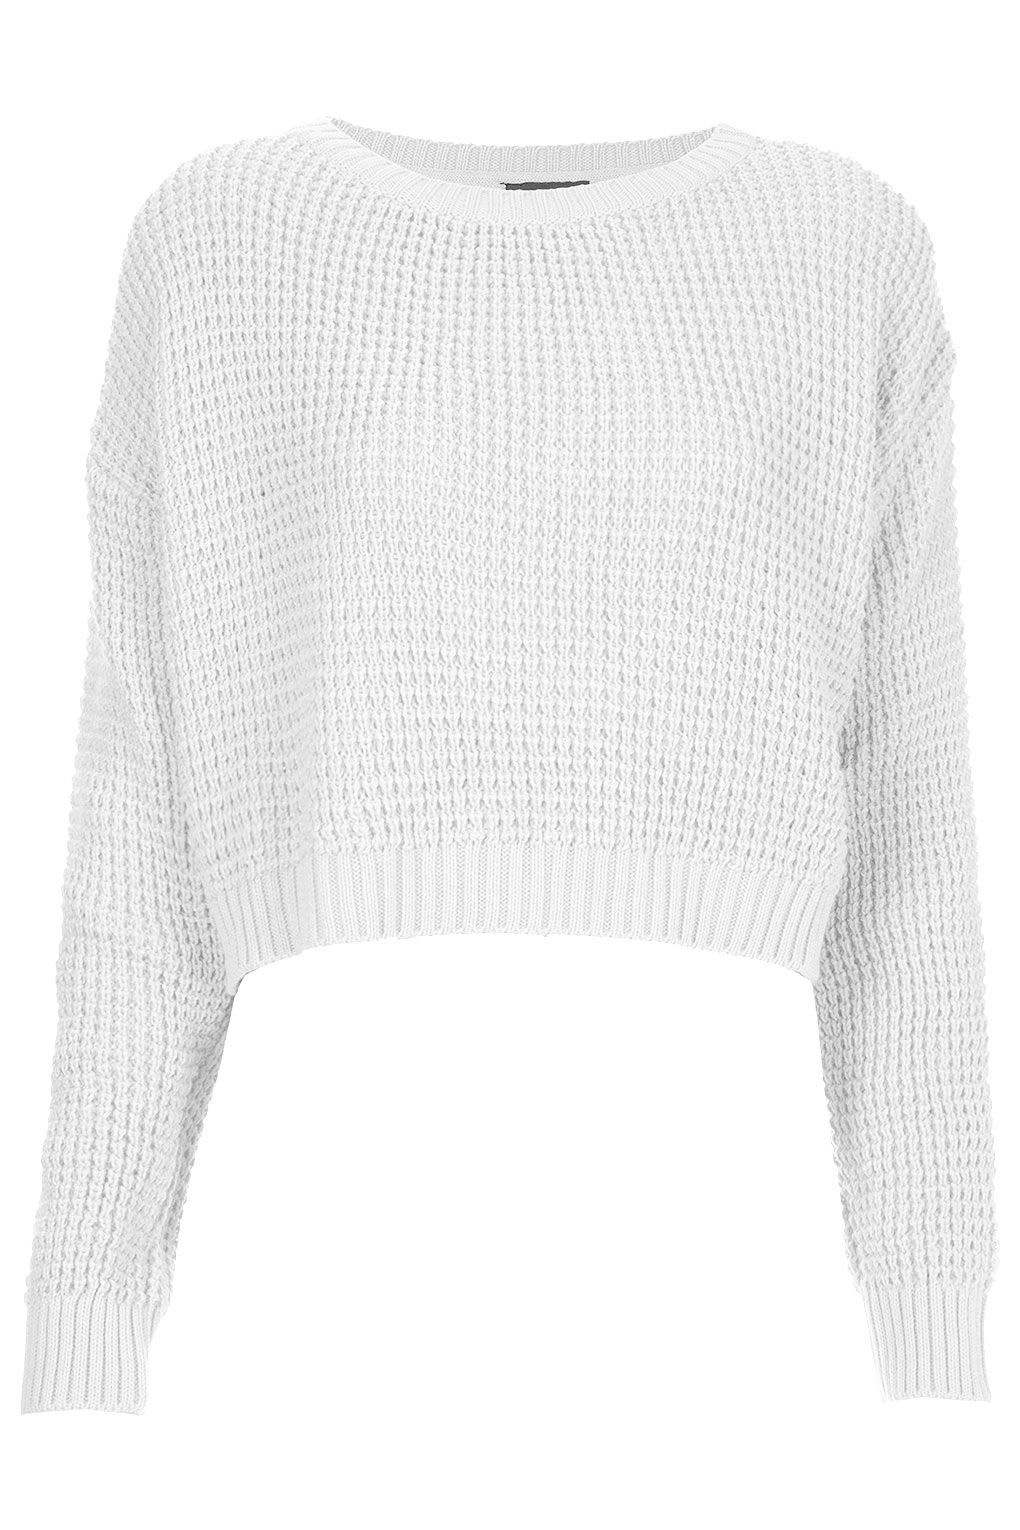 Knitted Textured Crop Jumper $45.00 | Closet | Pinterest | Cropped ...